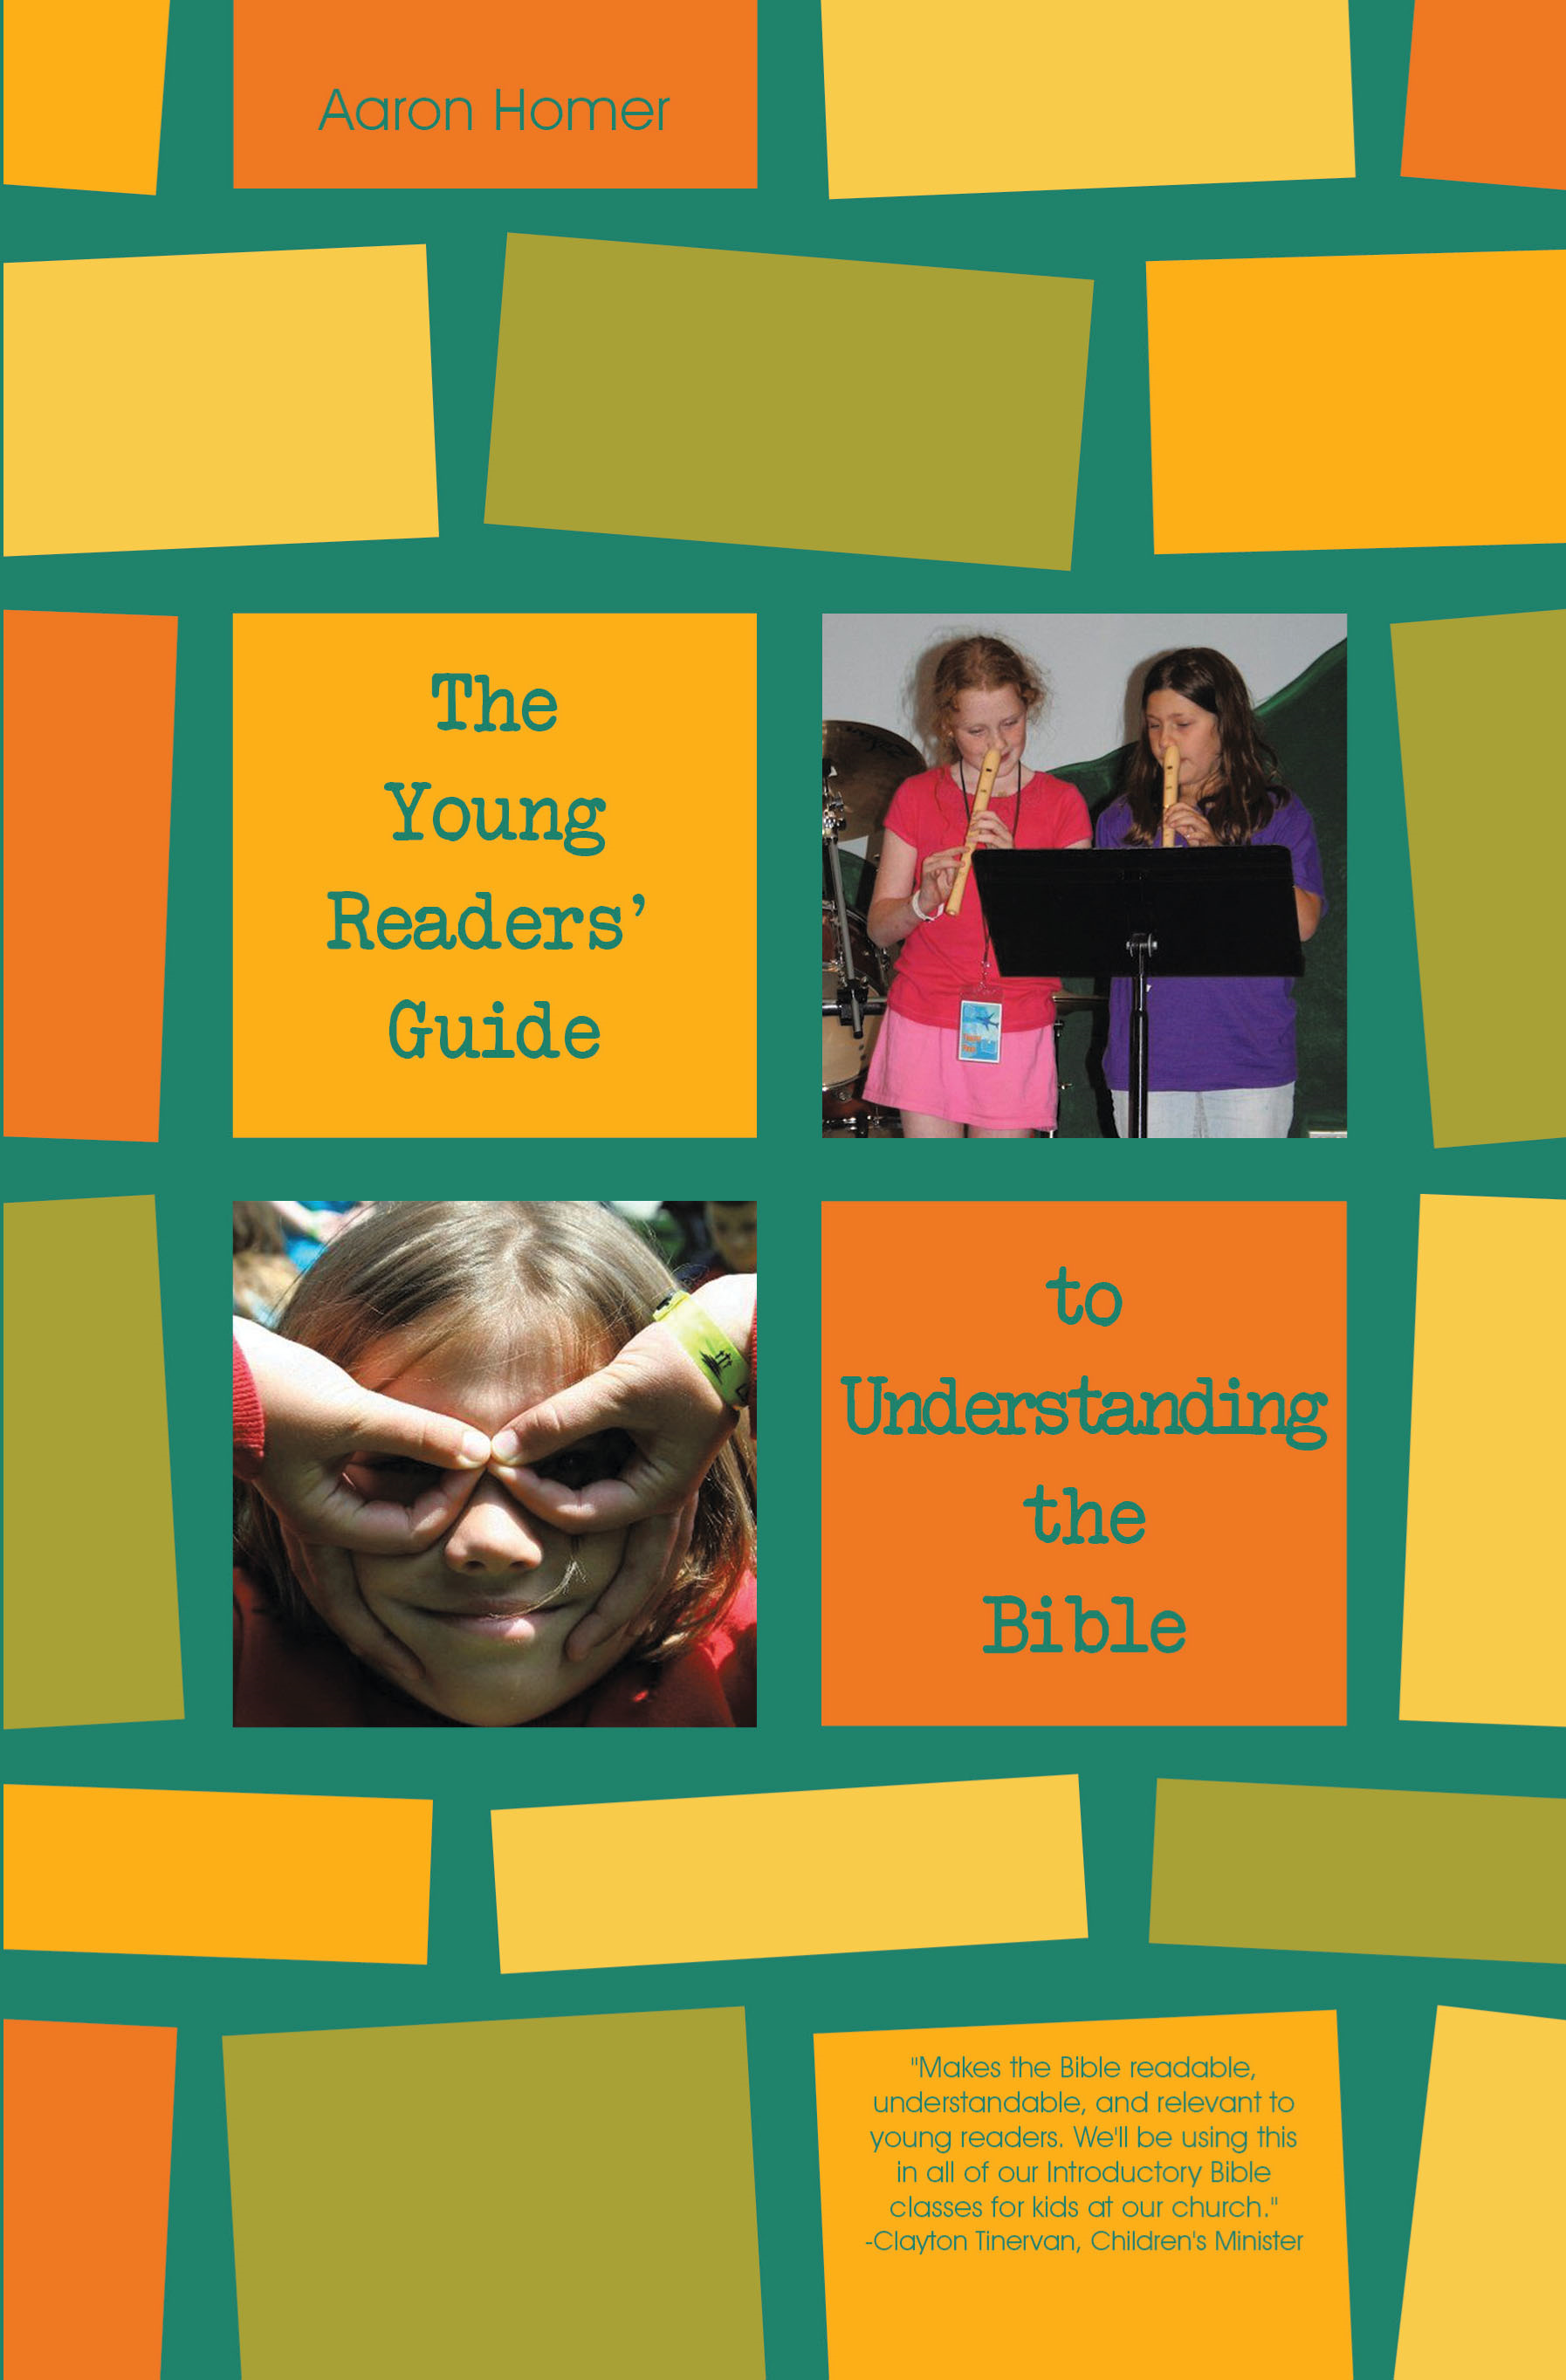 The Young Readers' Guide to Understanding the Bible